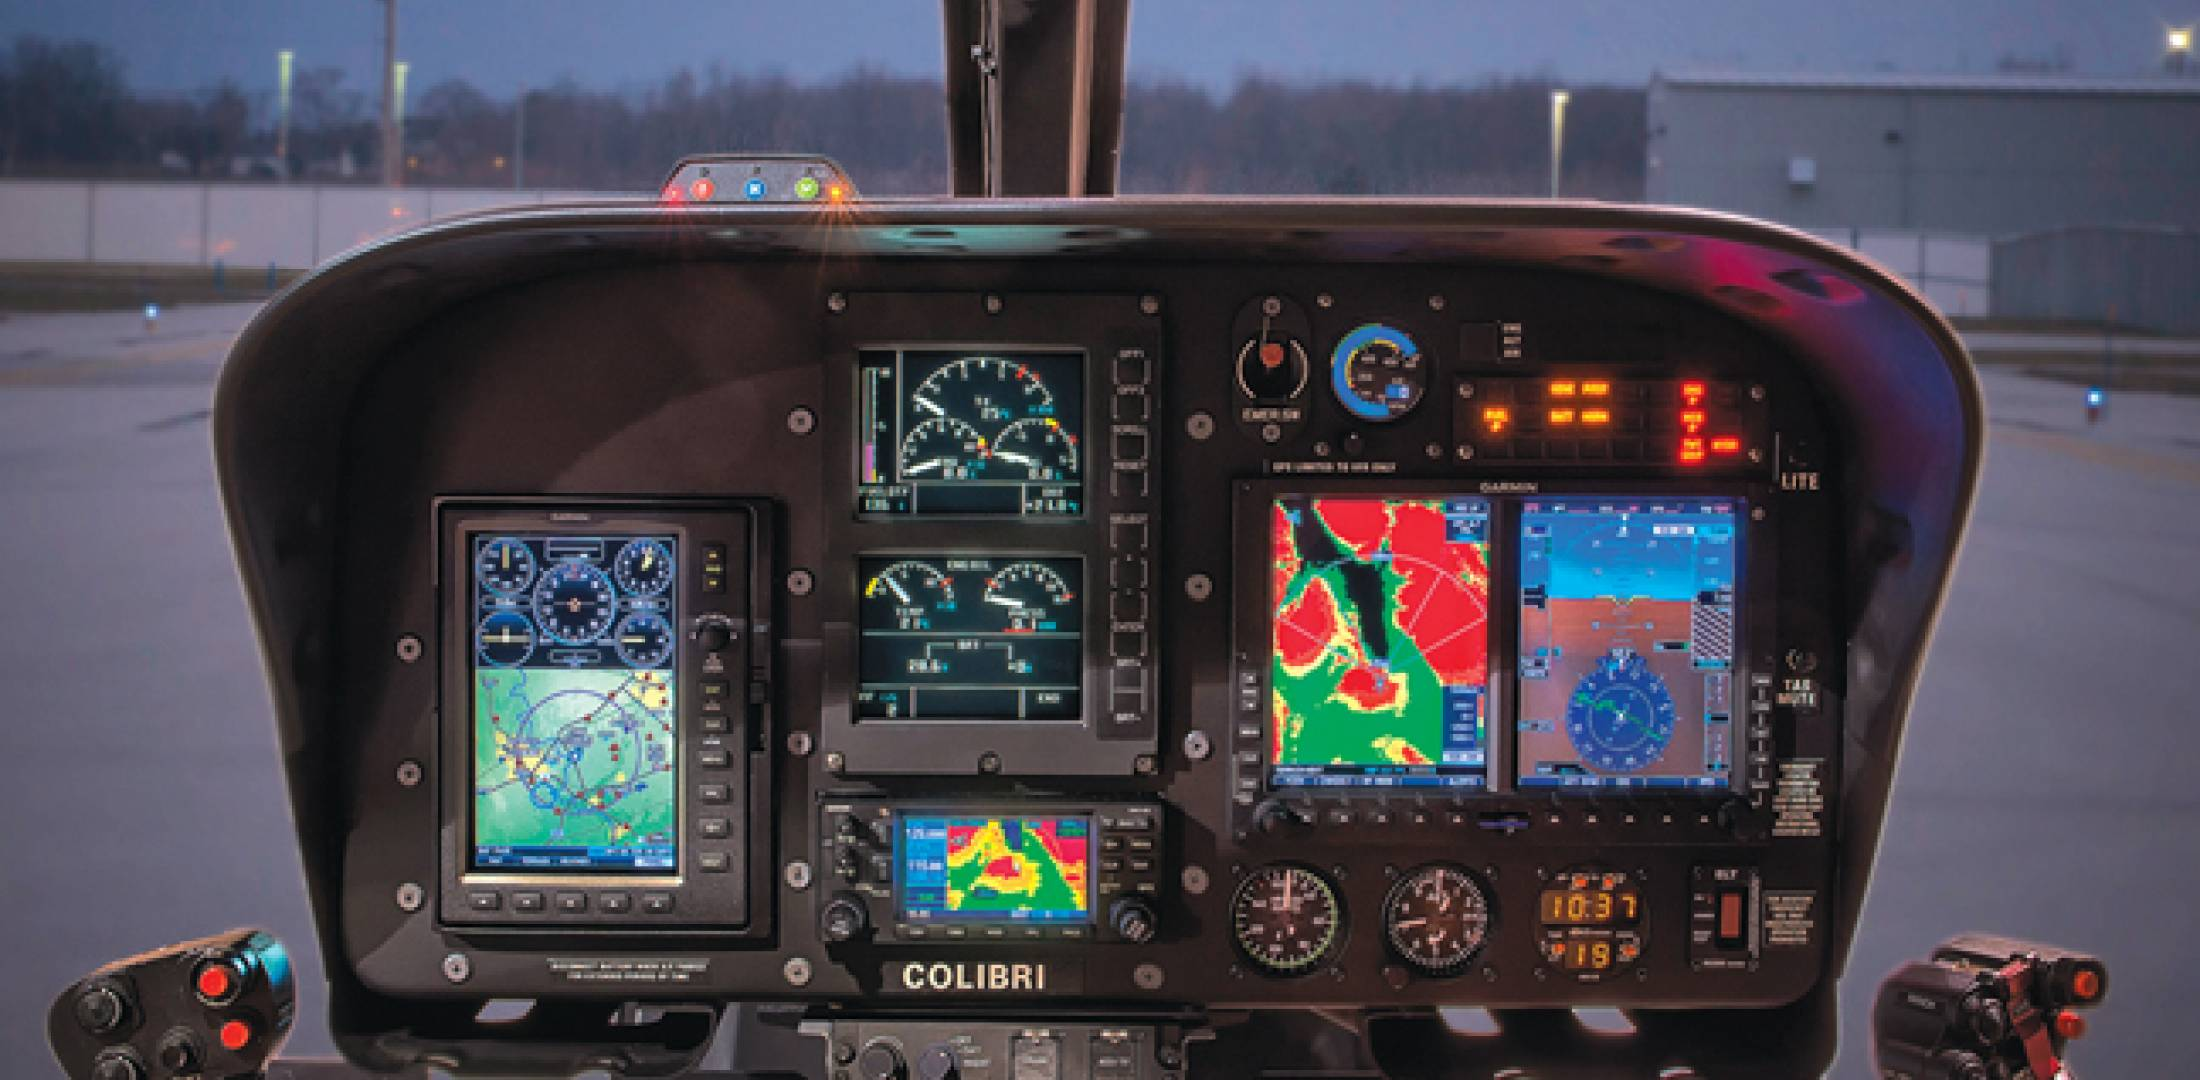 Kitchener Aero Avionics recently STC'd a  glass-cockpit option for the Eurocopter EC120.